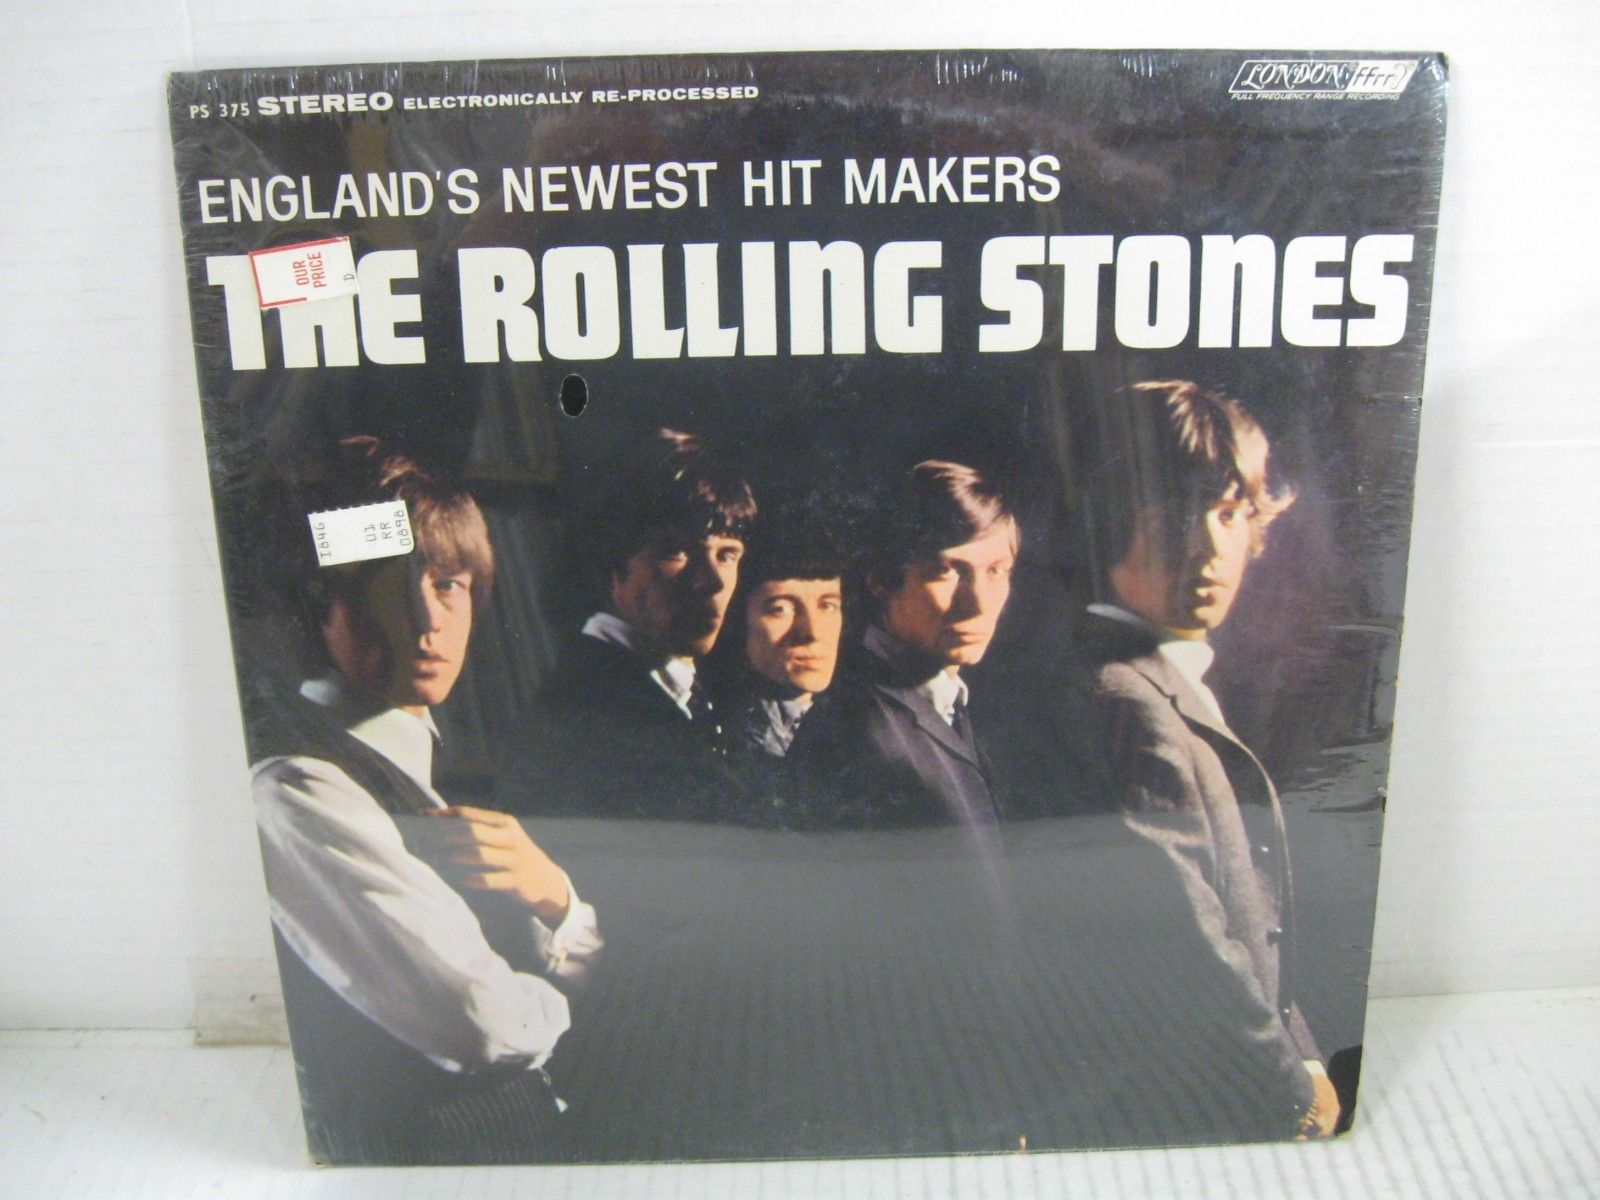 THE ROLLING STONES england's newest hitmakers LP London stereo PS 375 SEALED